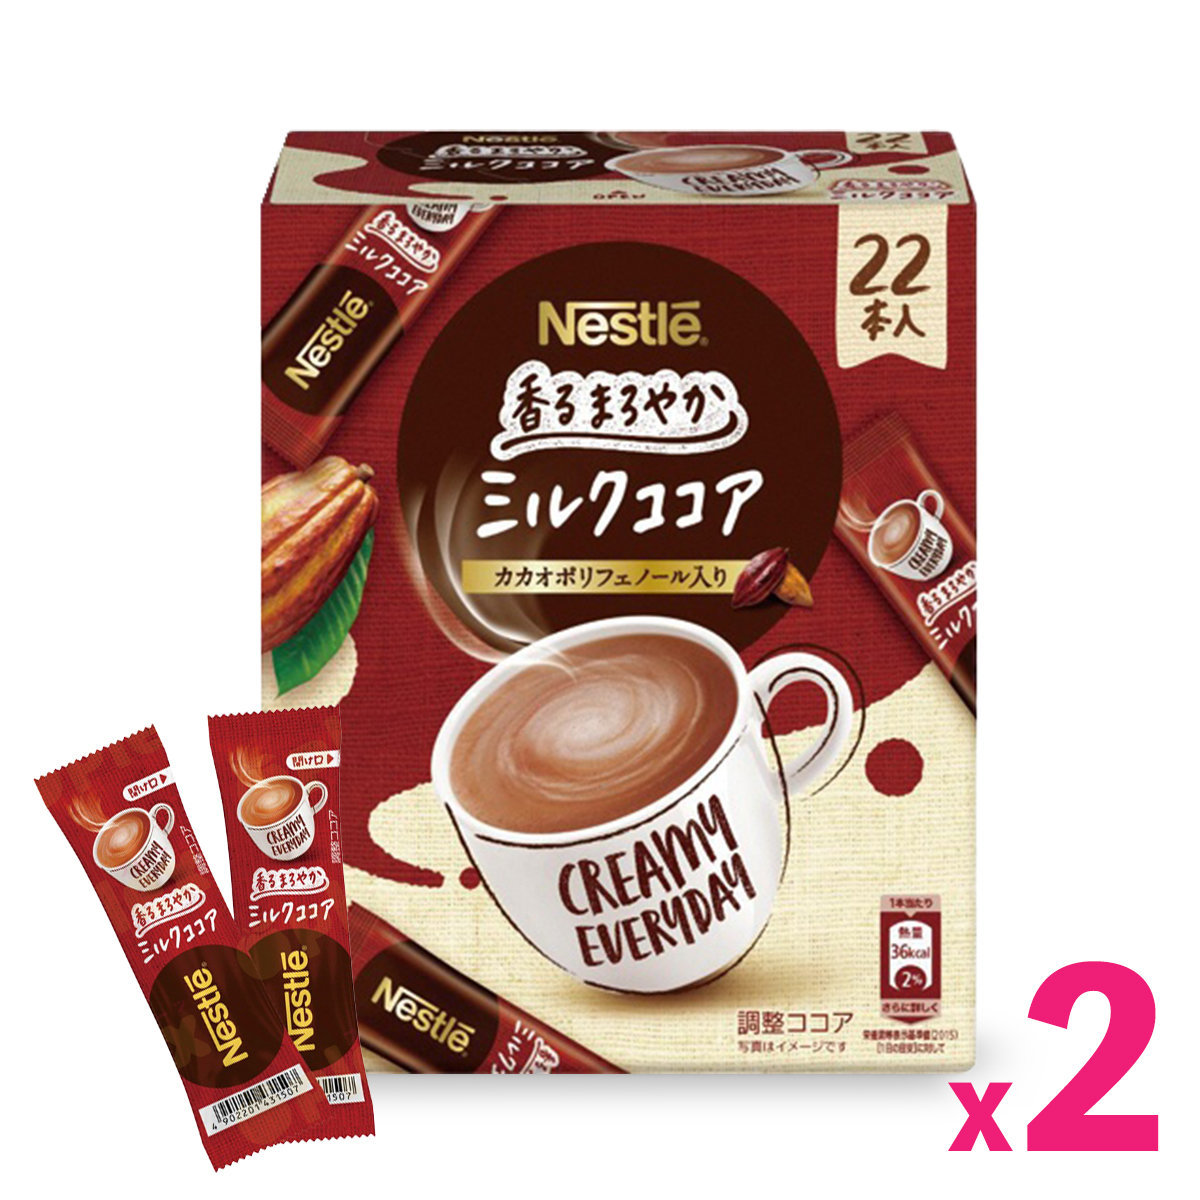 [Japan Edition] Instant Chocolate Latte (22pcs) x 2boxes